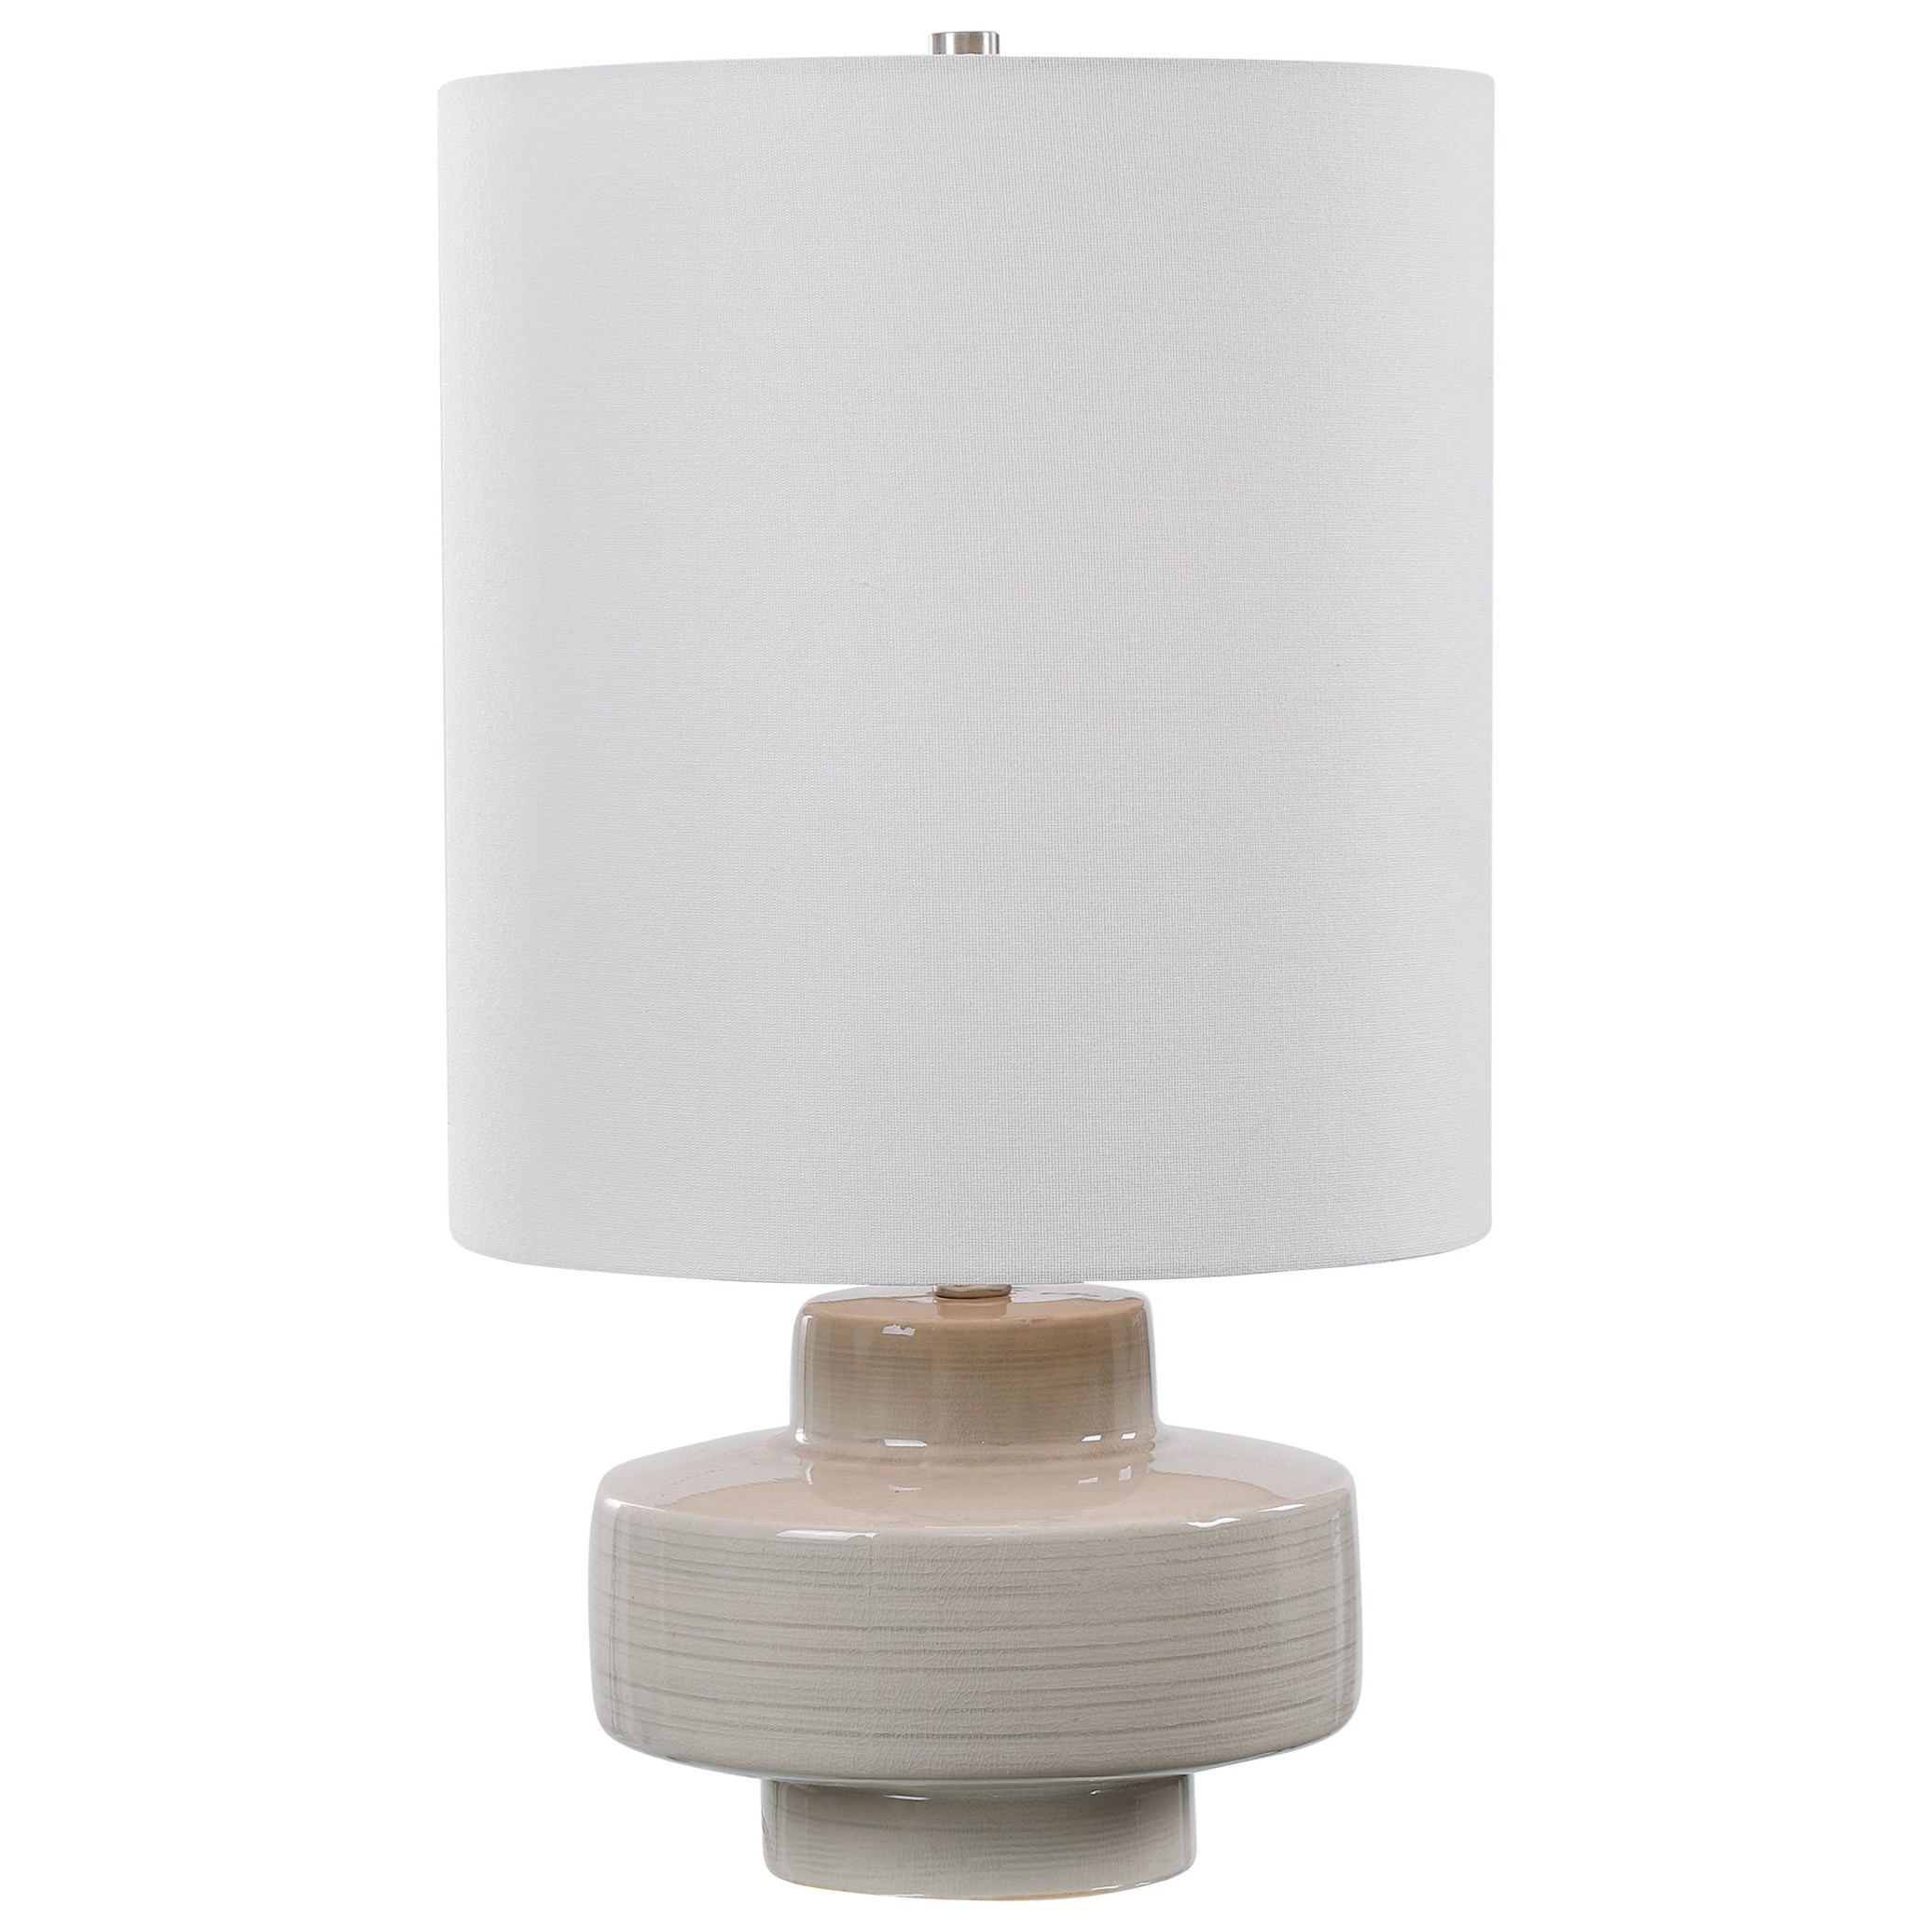 Accent Lamps Orwell Light Gray Accent Lamp by Uttermost at Del Sol Furniture